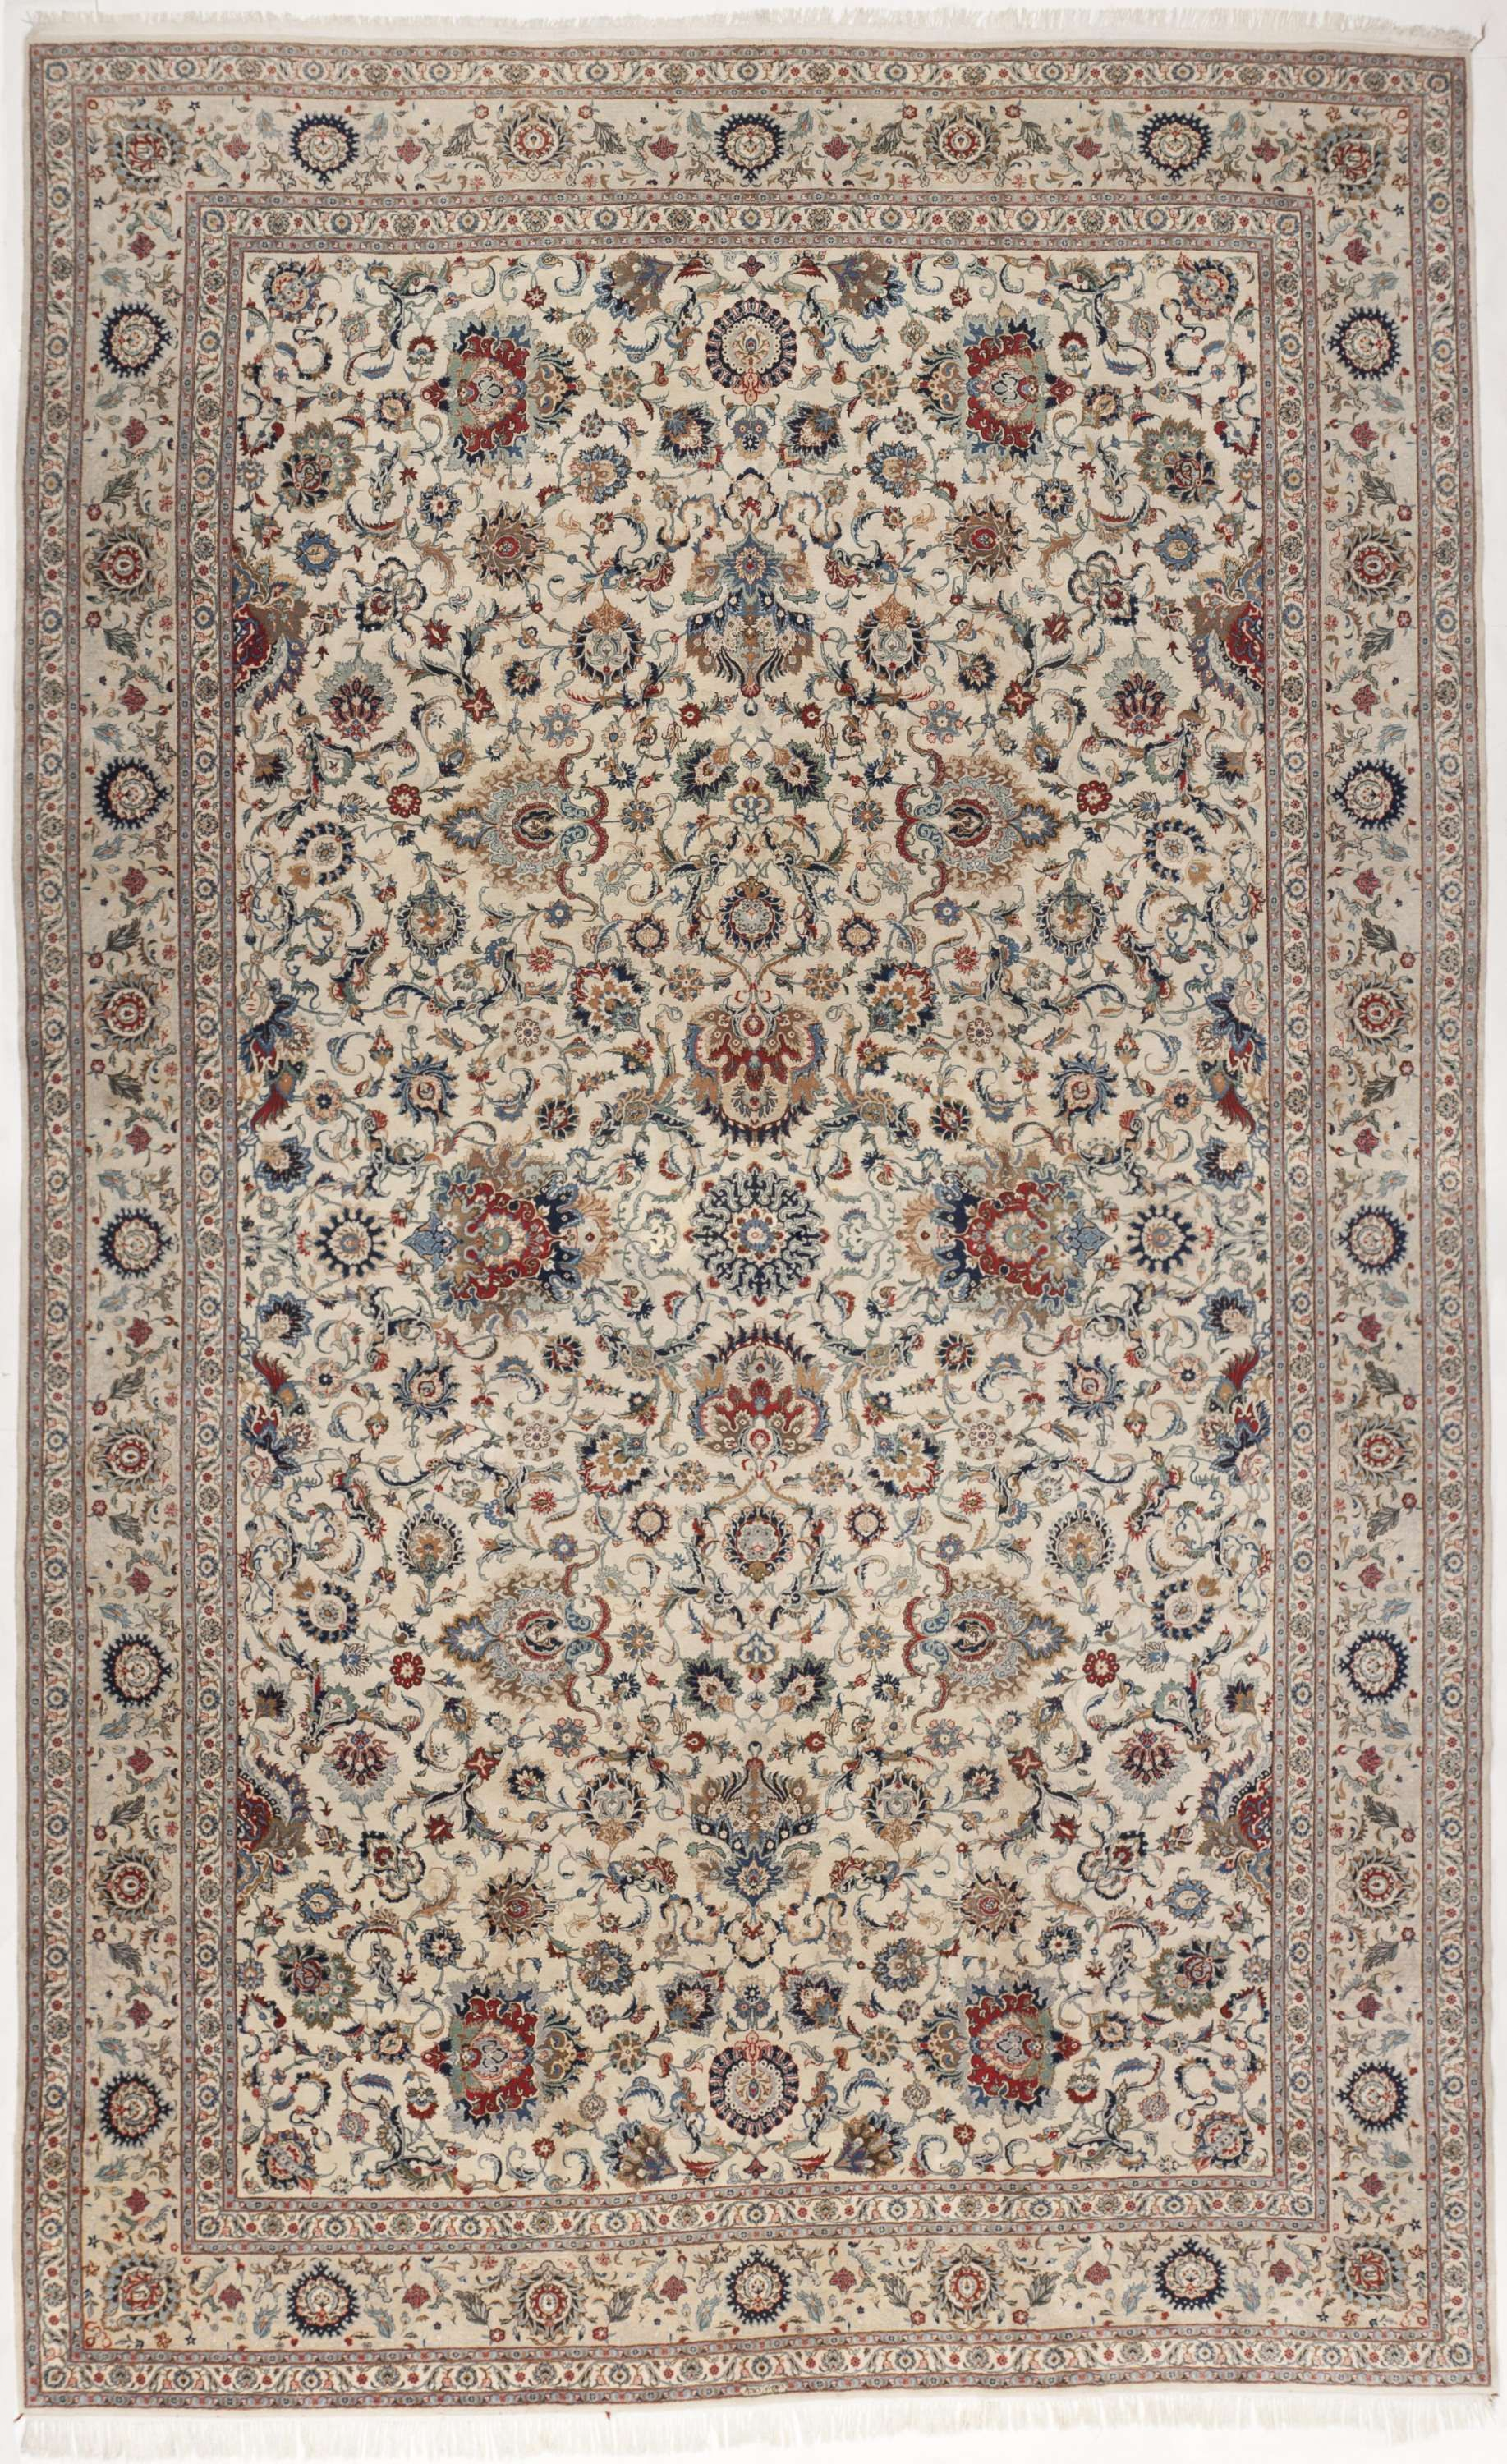 Kashan Nlr313b Traditional Contemporary Luxury Rugs Inerior Decor Interiordesign Kashan Westhollywood Beverl Rugs Woven Decor Persian Rug Living Room